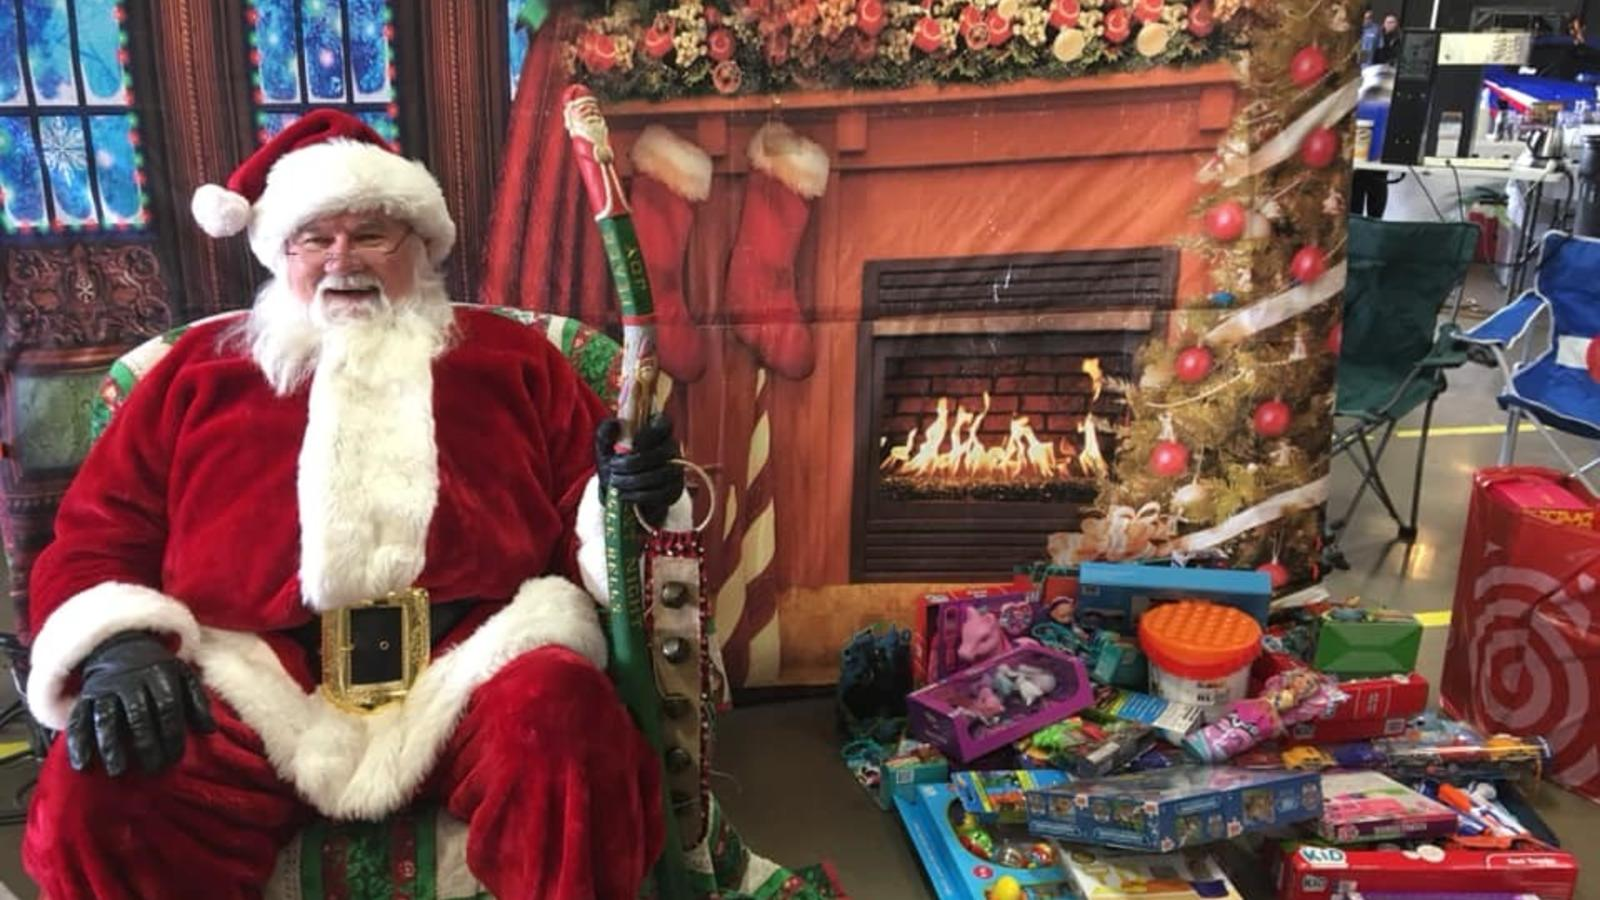 Santa Claus spreads cheer to all at the annual Toys for Tots campaign